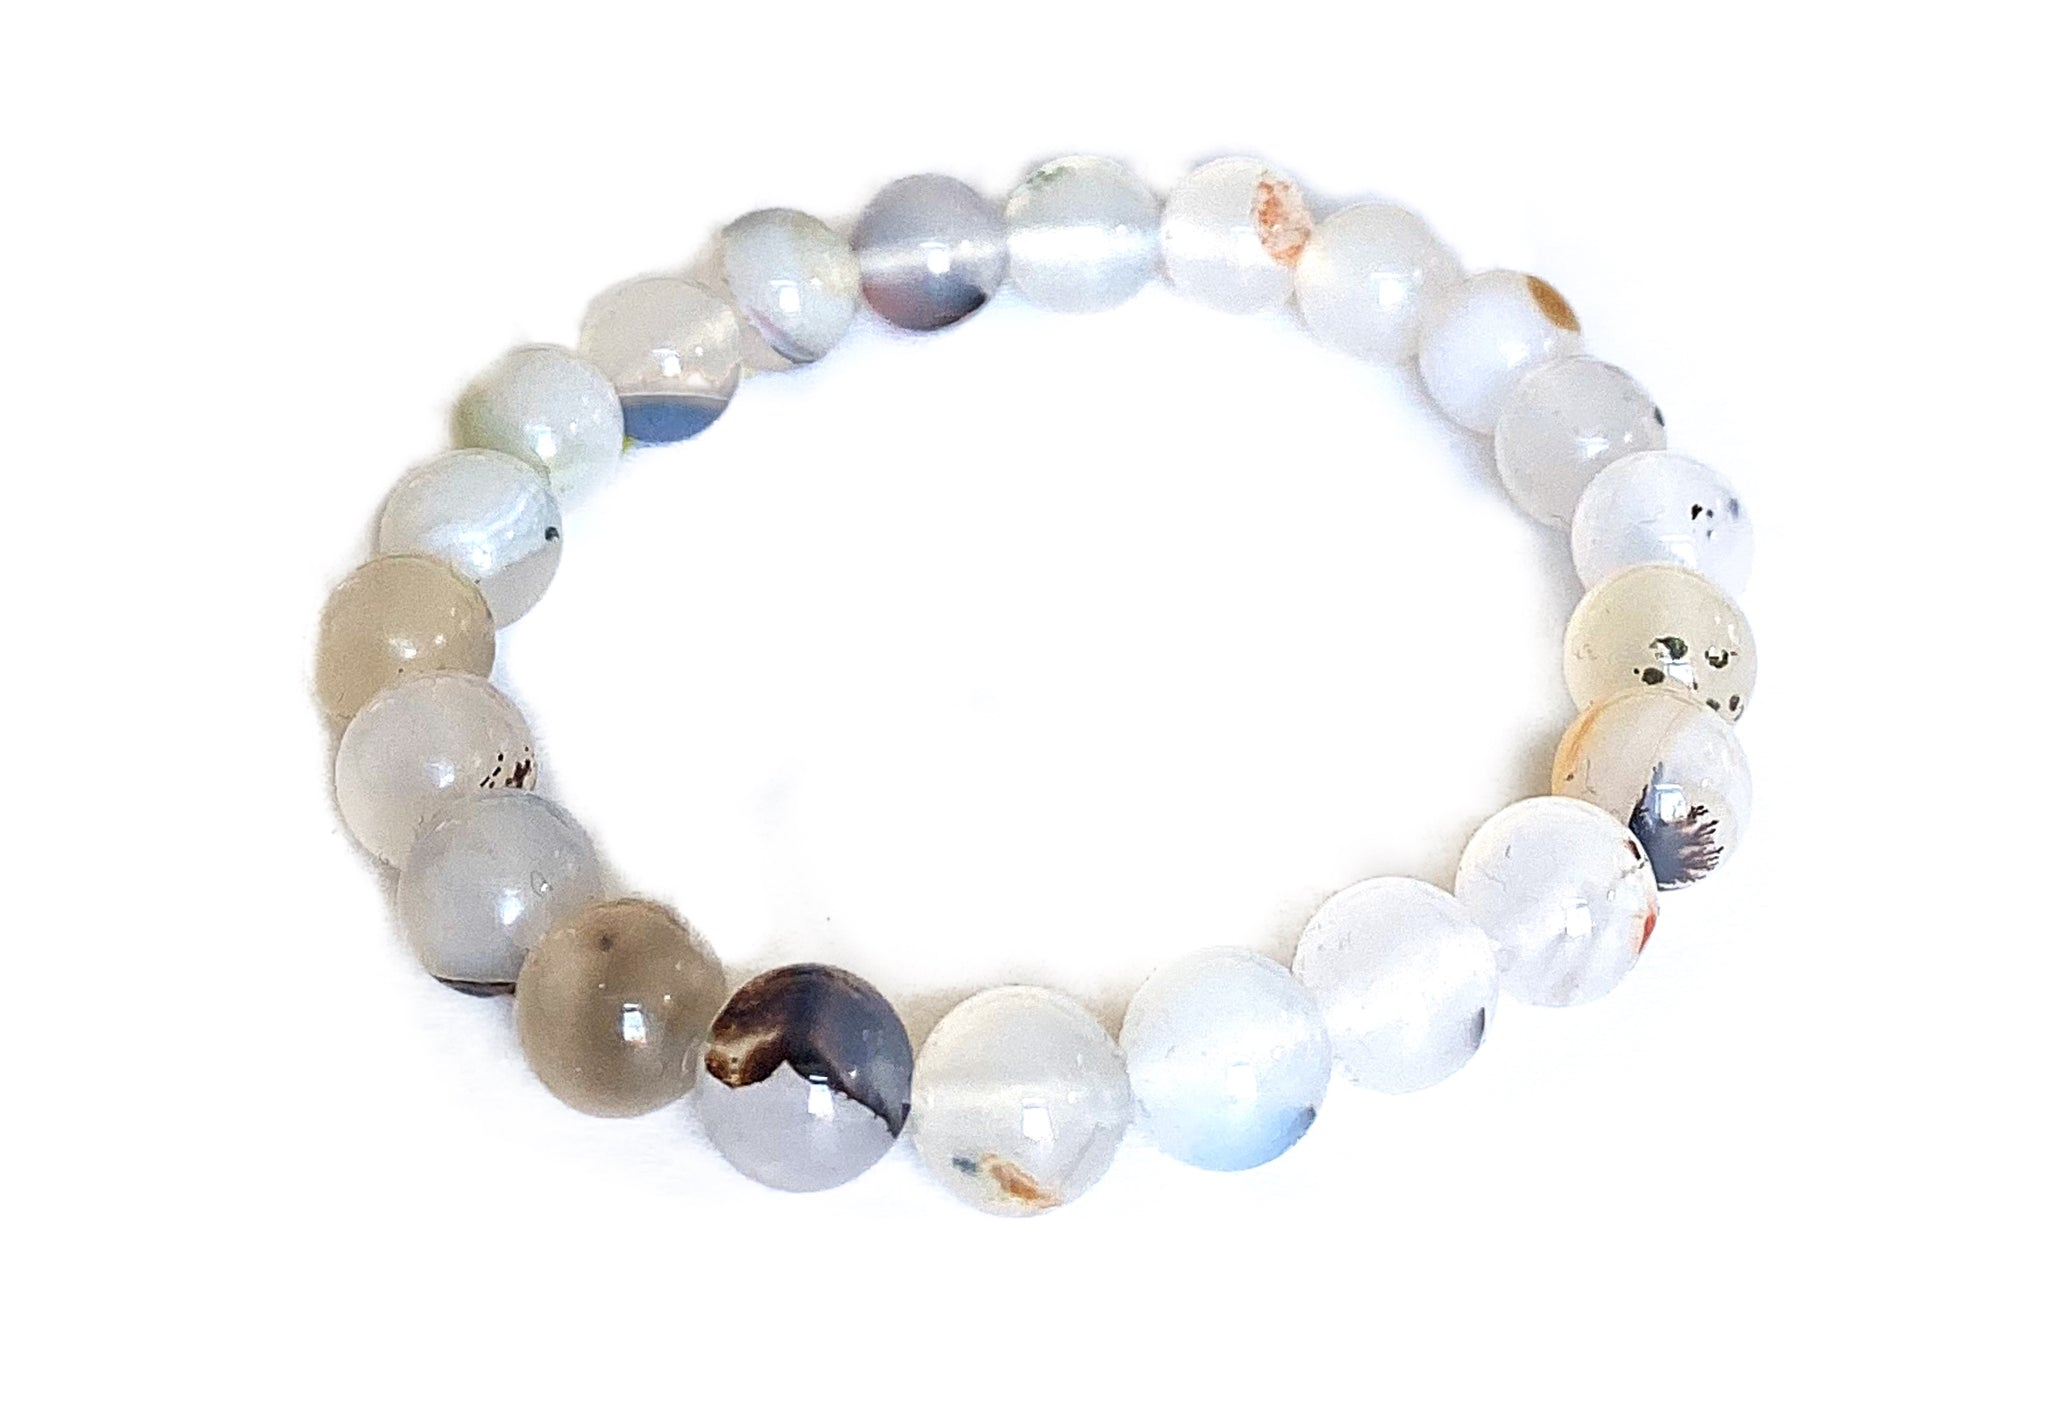 Dendritic Agate Bracelet 8mm